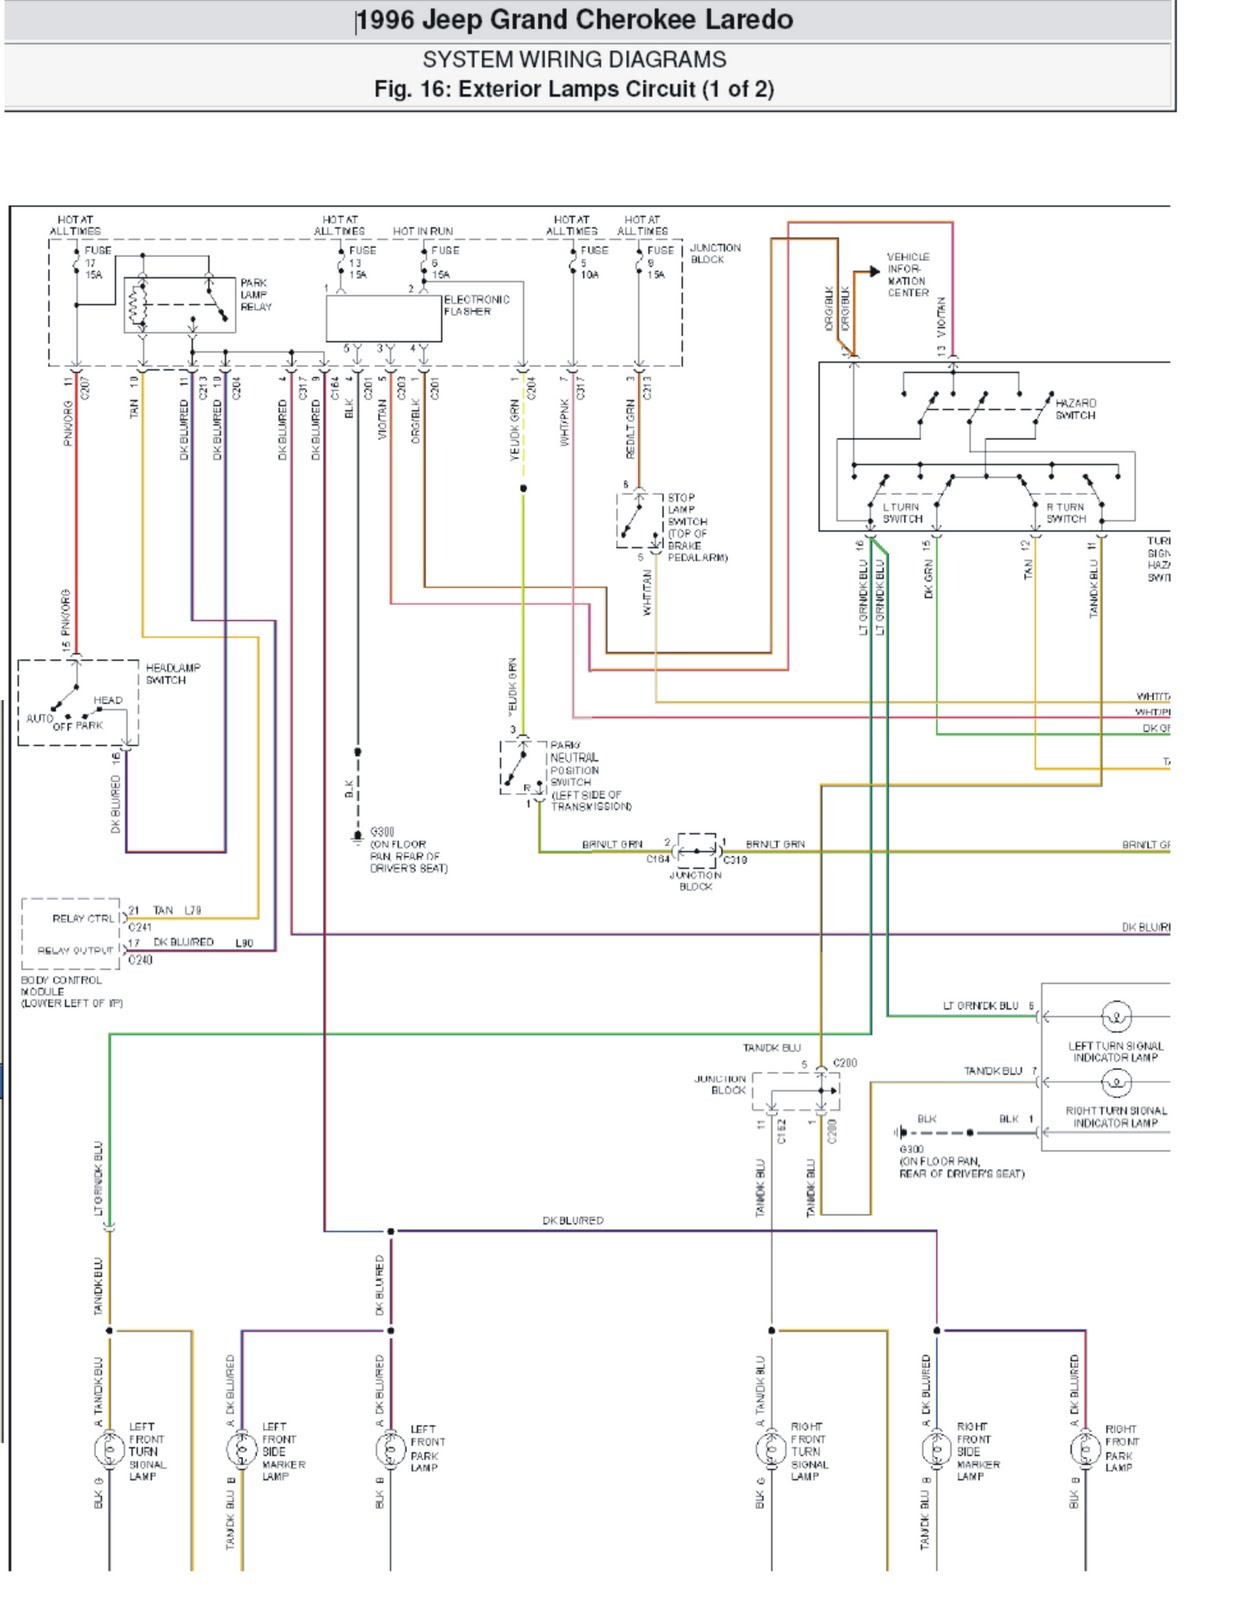 May 2011 Schematic Wiring Diagrams Solutions Auto Electrical W10158196a Whirlpool Schematics